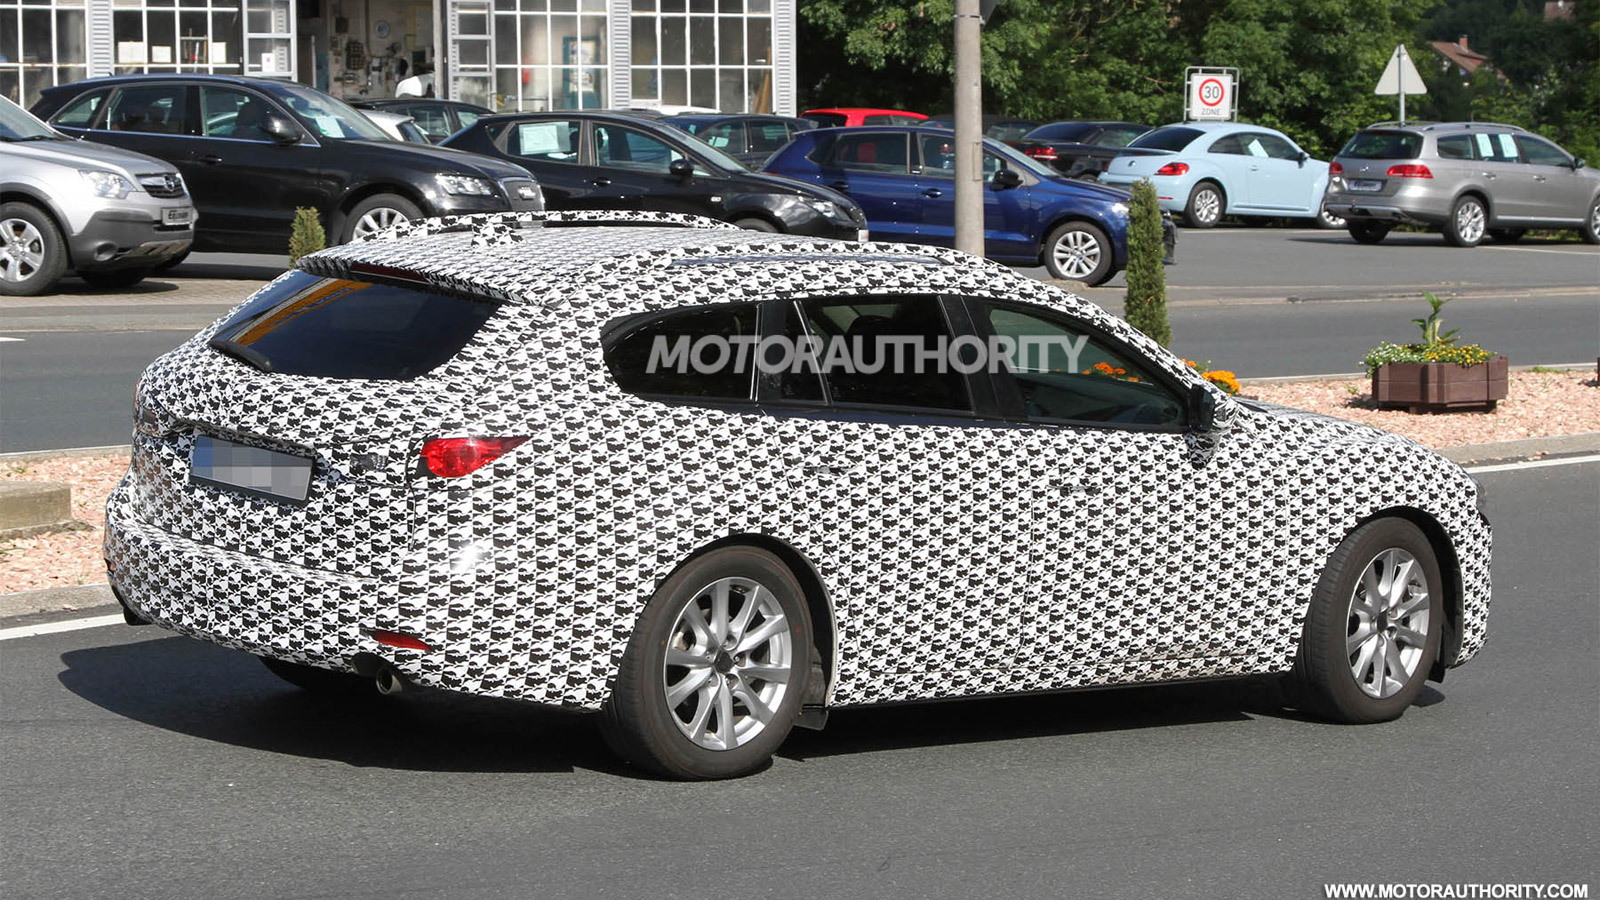 2014 Mazda Mazda6 Wagon spy shots